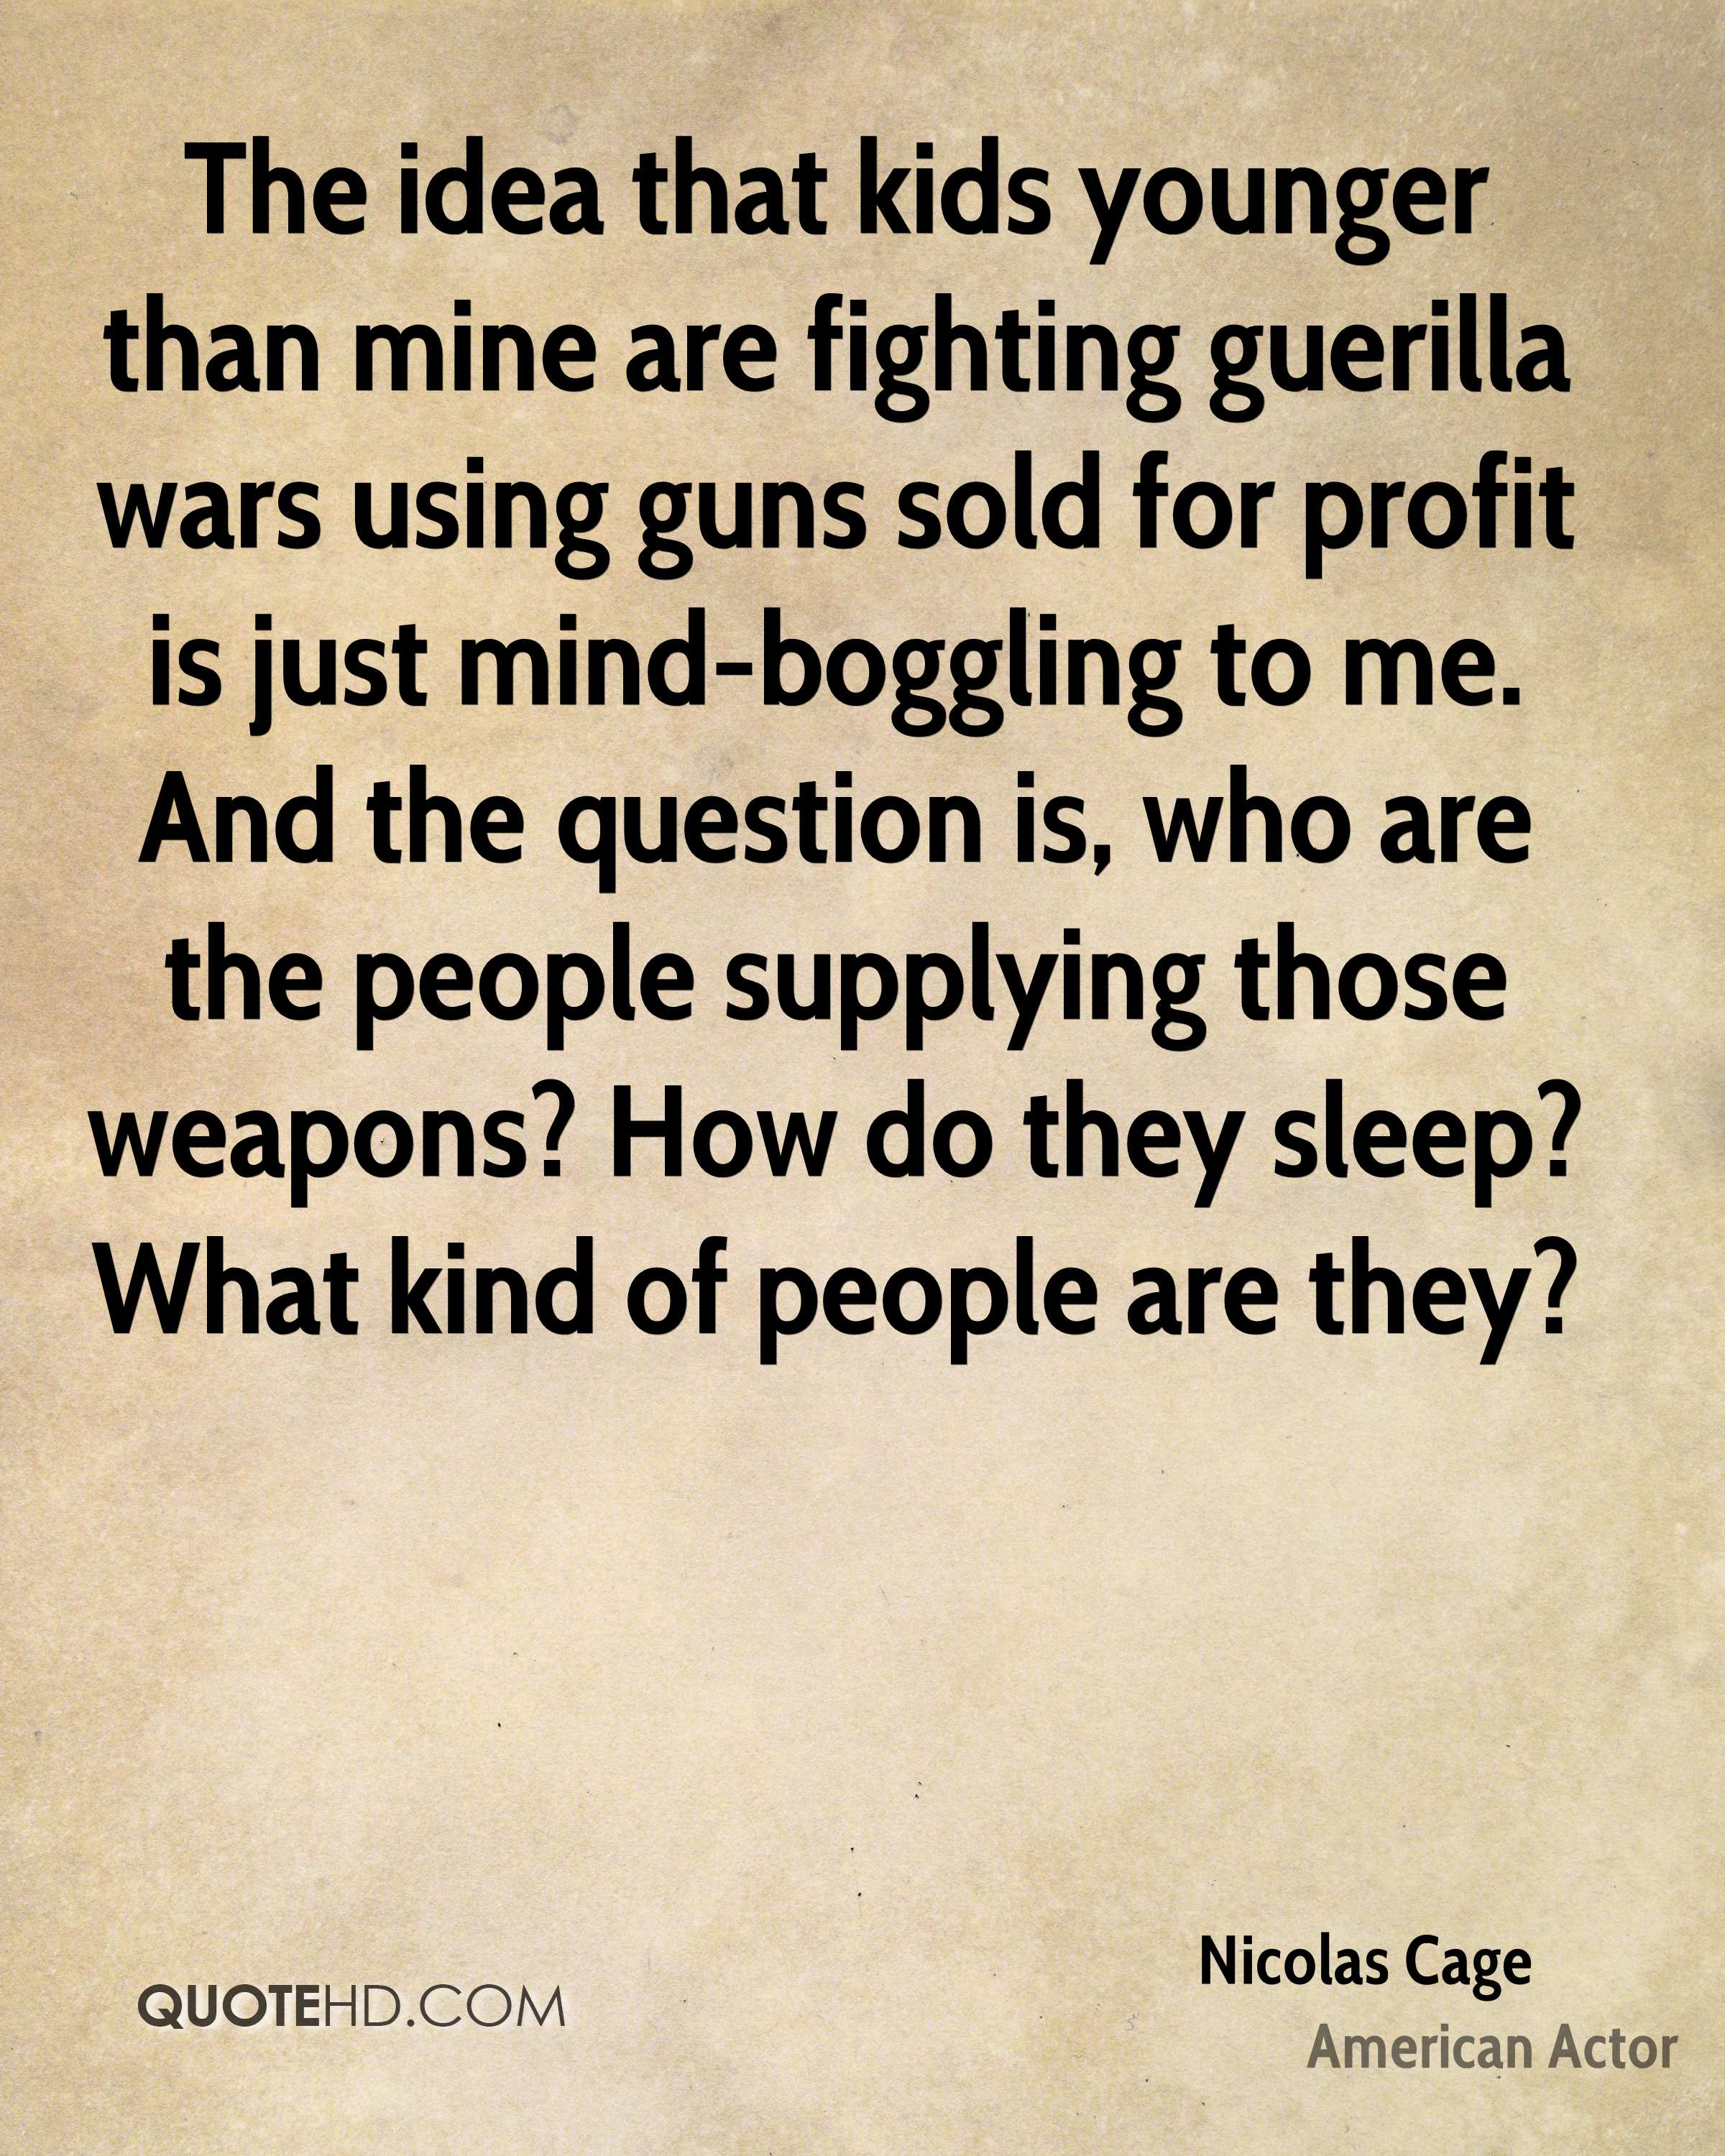 The idea that kids younger than mine are fighting guerilla wars using guns sold for profit is just mind-boggling to me. And the question is, who are the people supplying those weapons? How do they sleep? What kind of people are they?